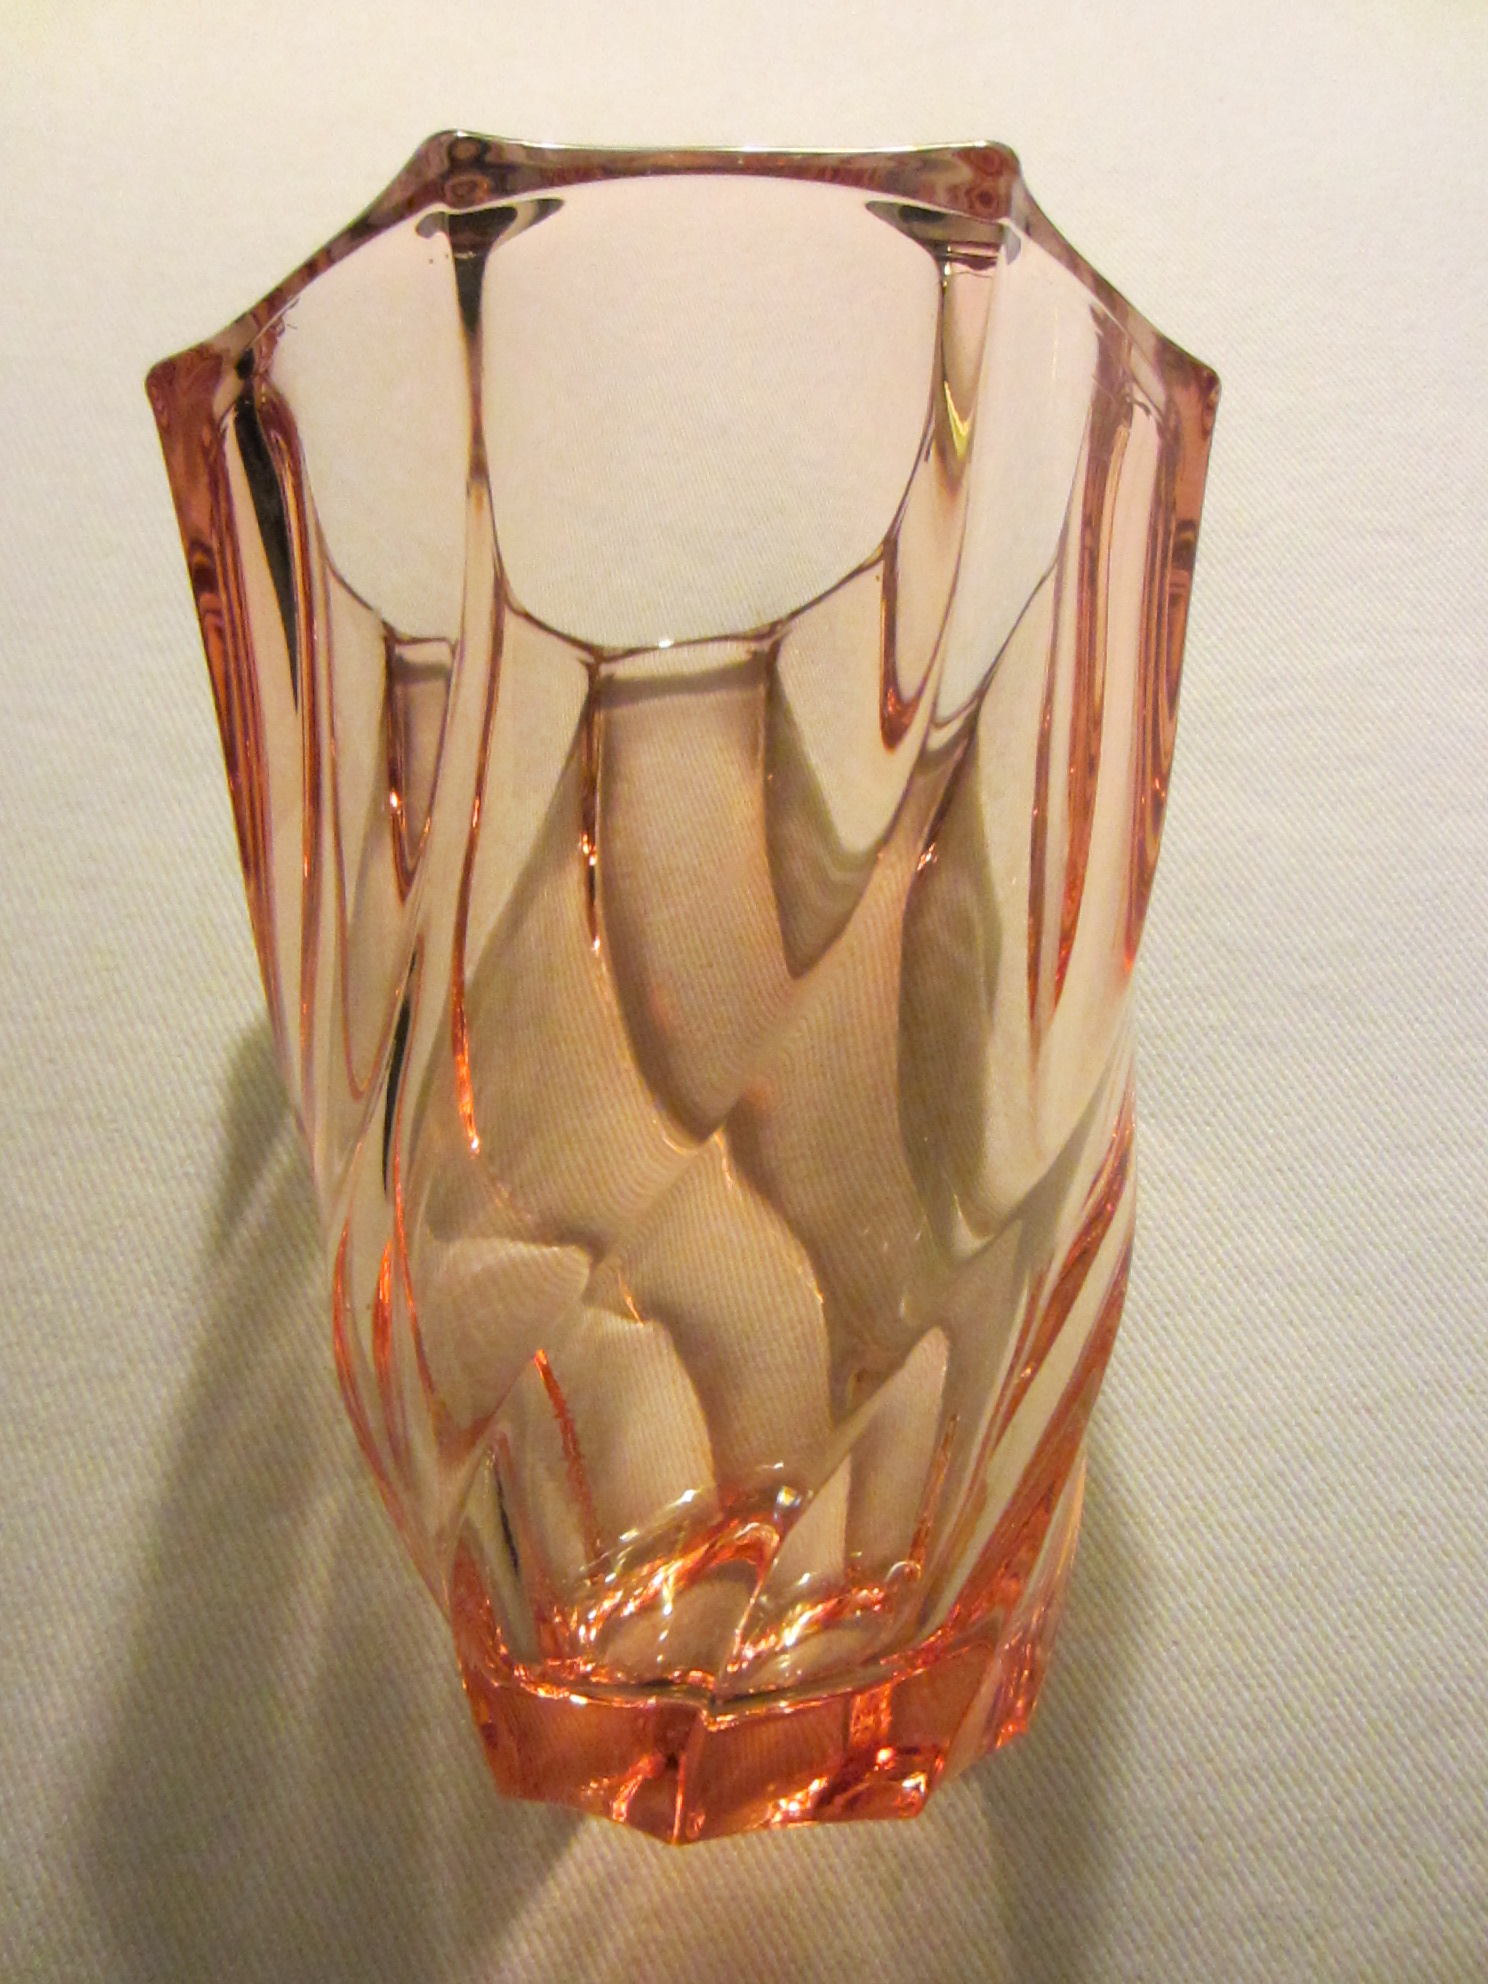 France amber glass flower vase for sale antiques classifieds floridaeventfo Image collections